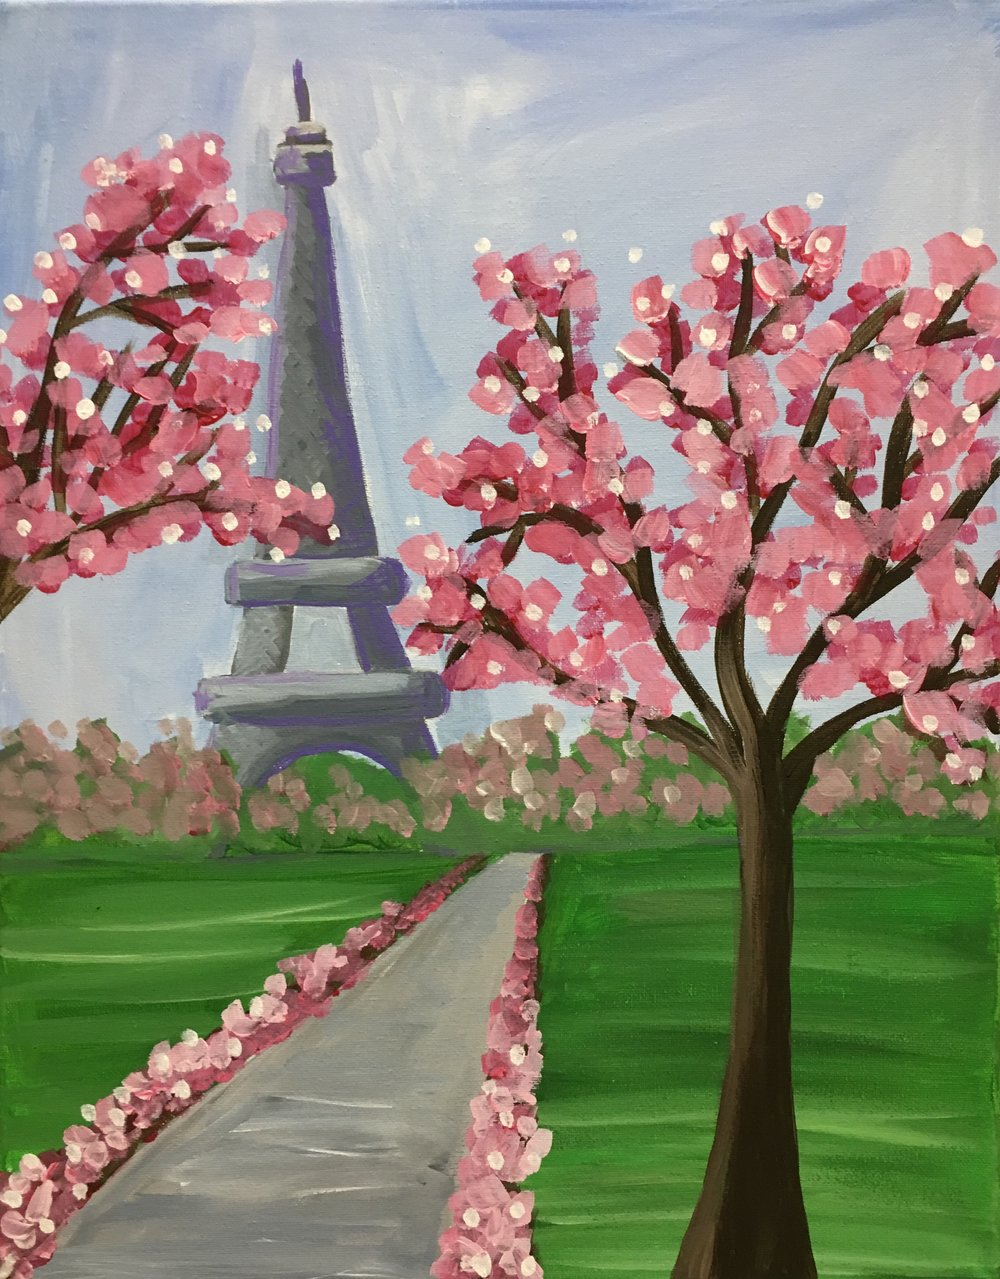 Spring Eiffel Tower (difficult)